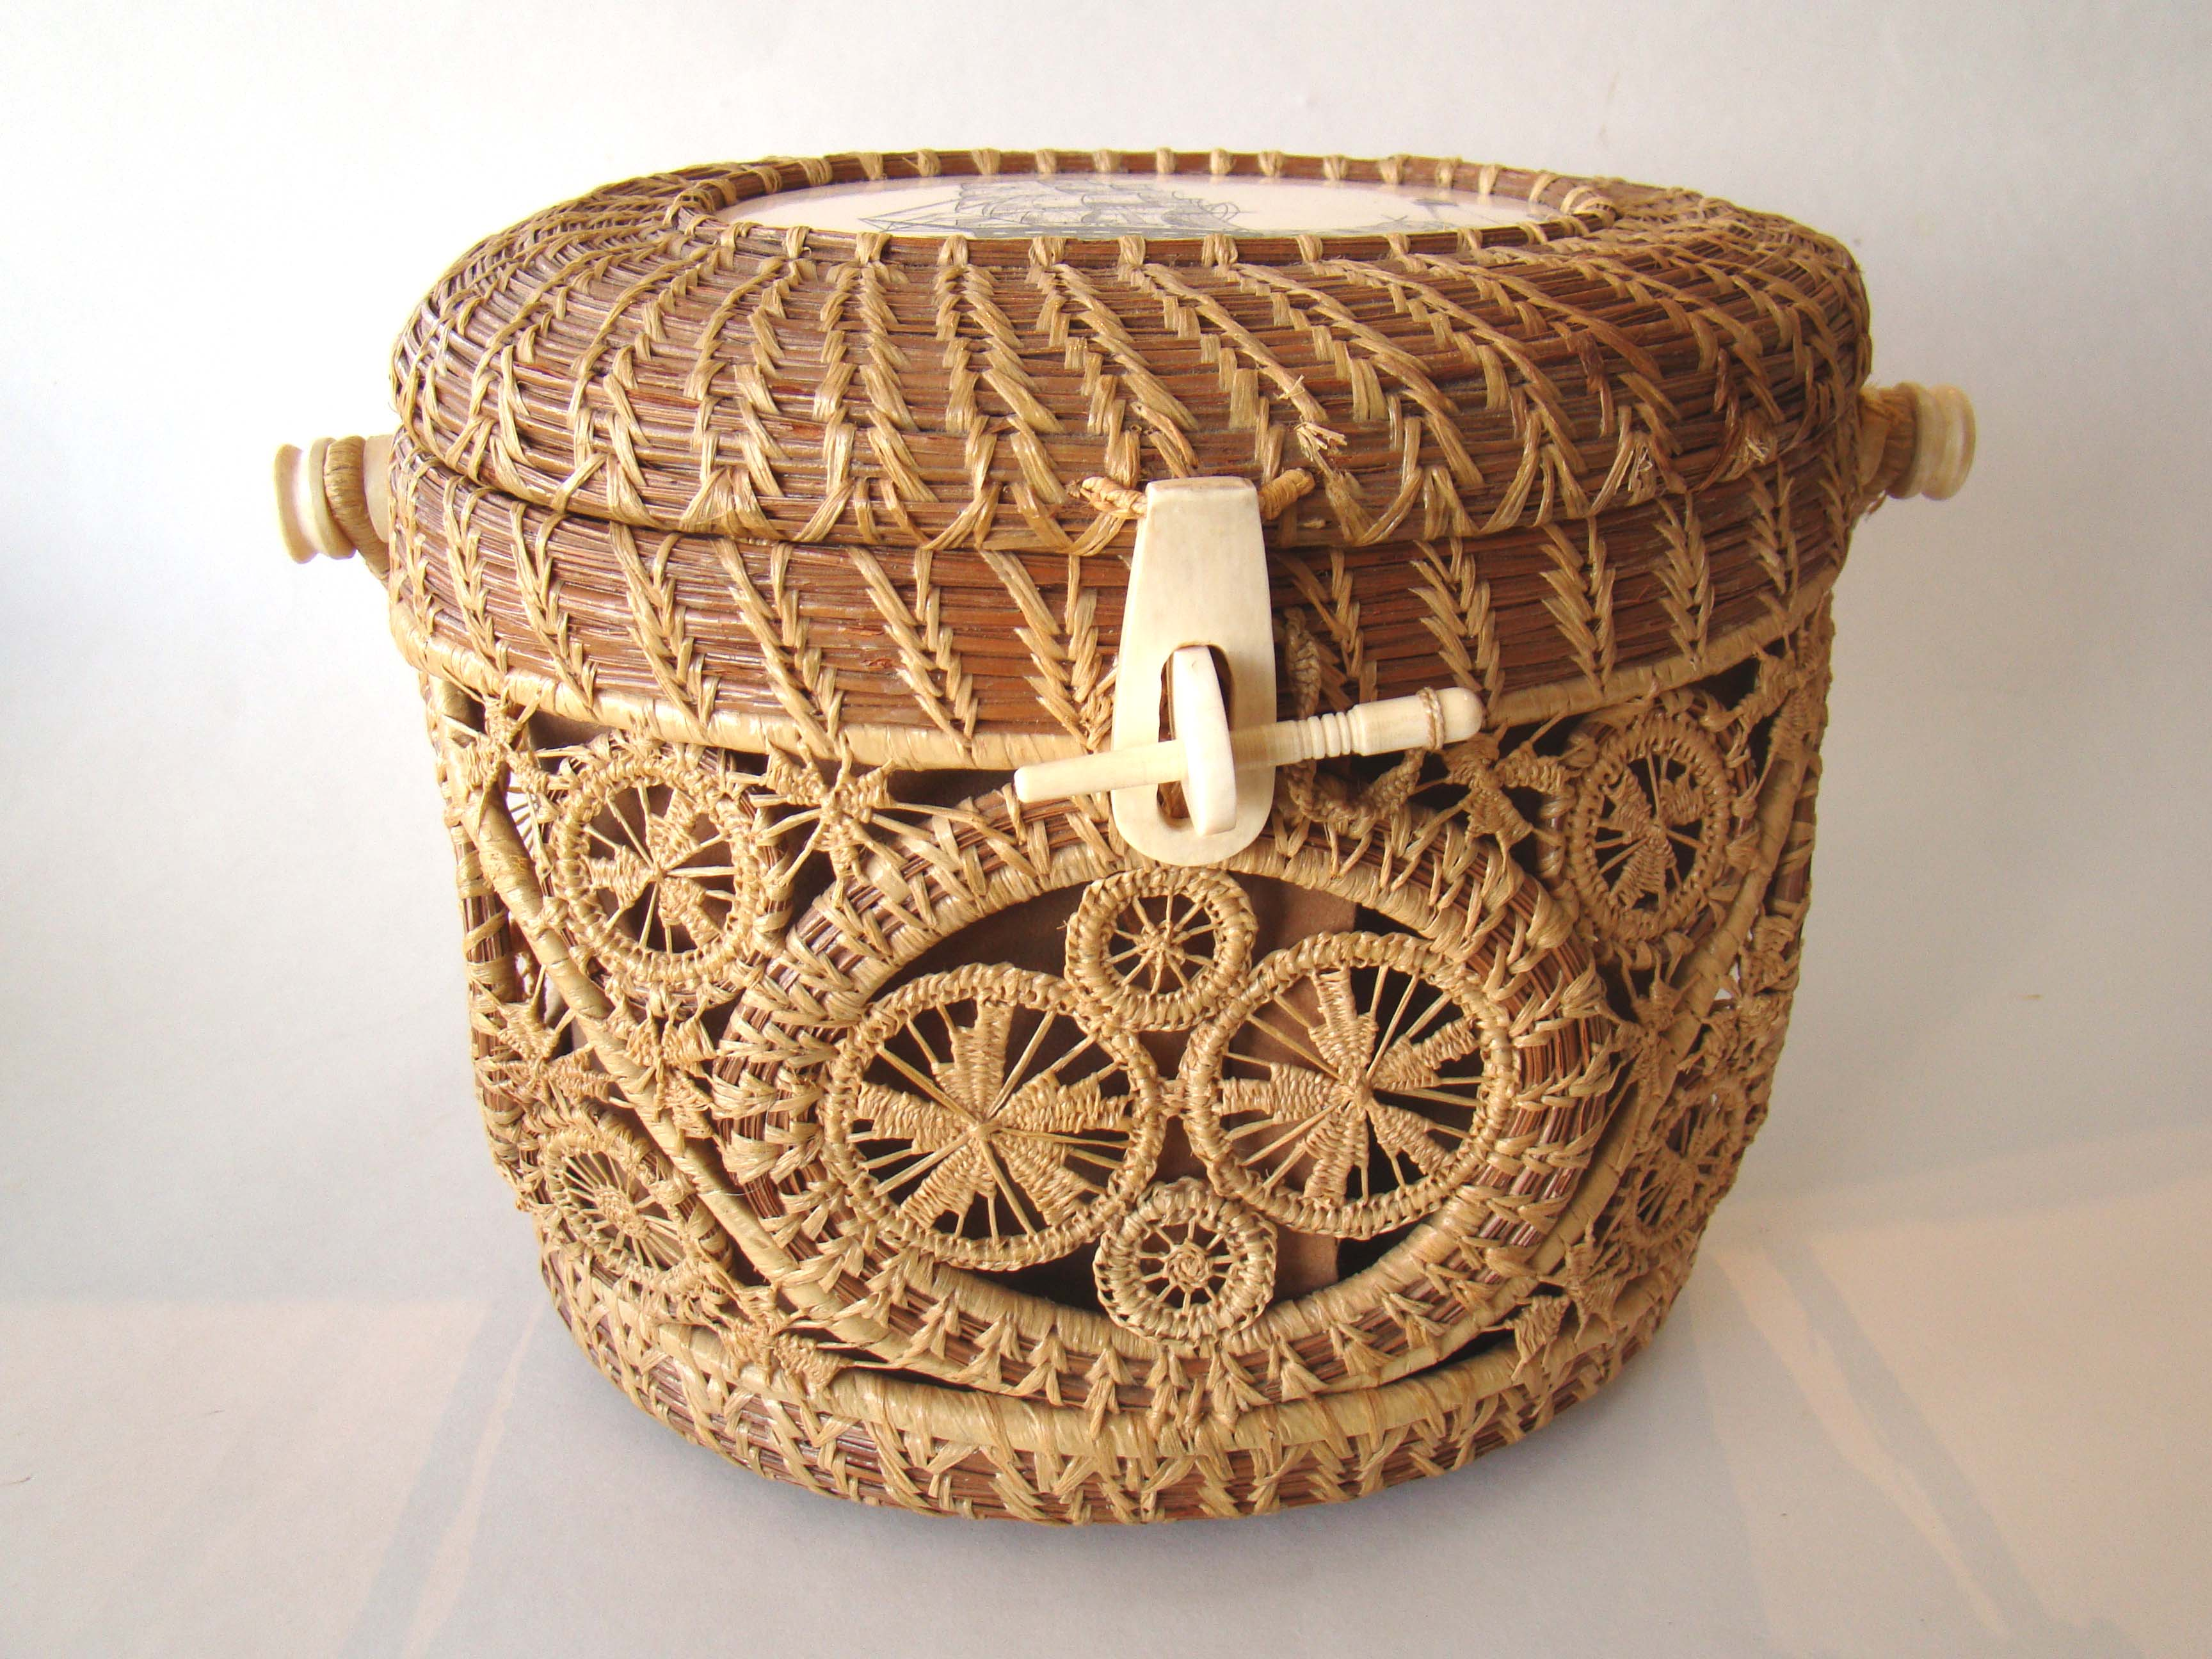 click to view larger image of A famous Mattapoisett basket made by the original creator of the baskets Gladys Ellis circa 1970